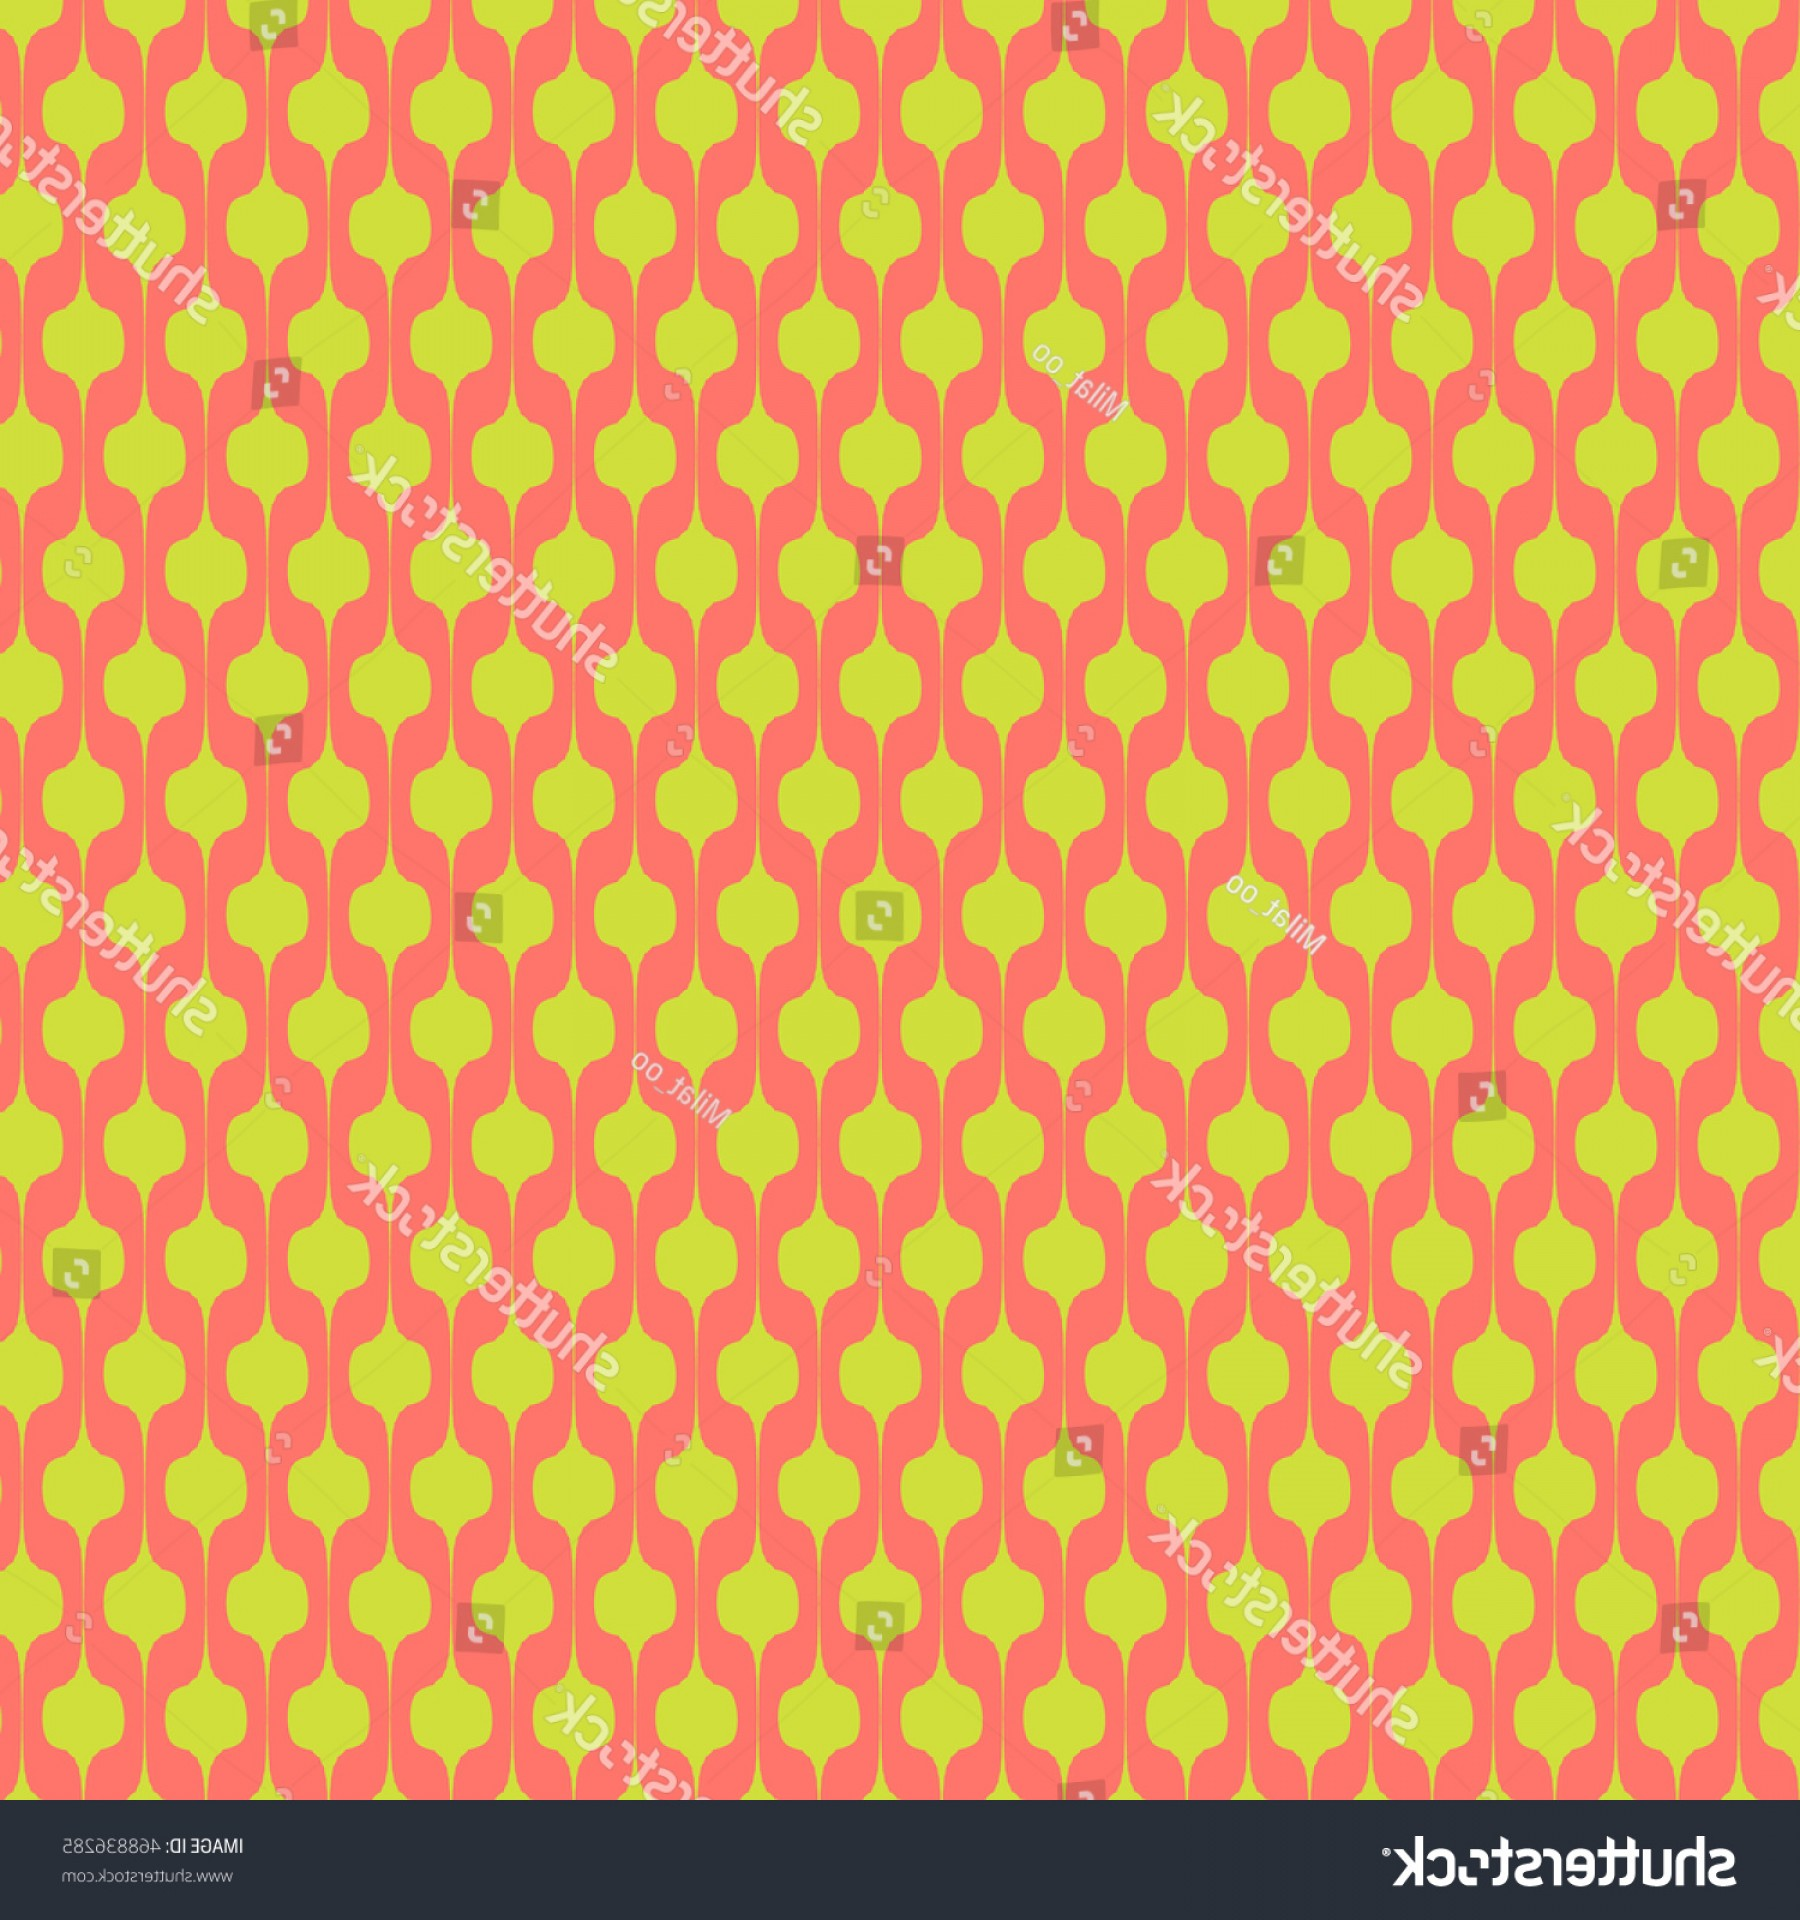 Distressed Red Background Vector: Abstract Distressed Art Deco Trellis Pattern